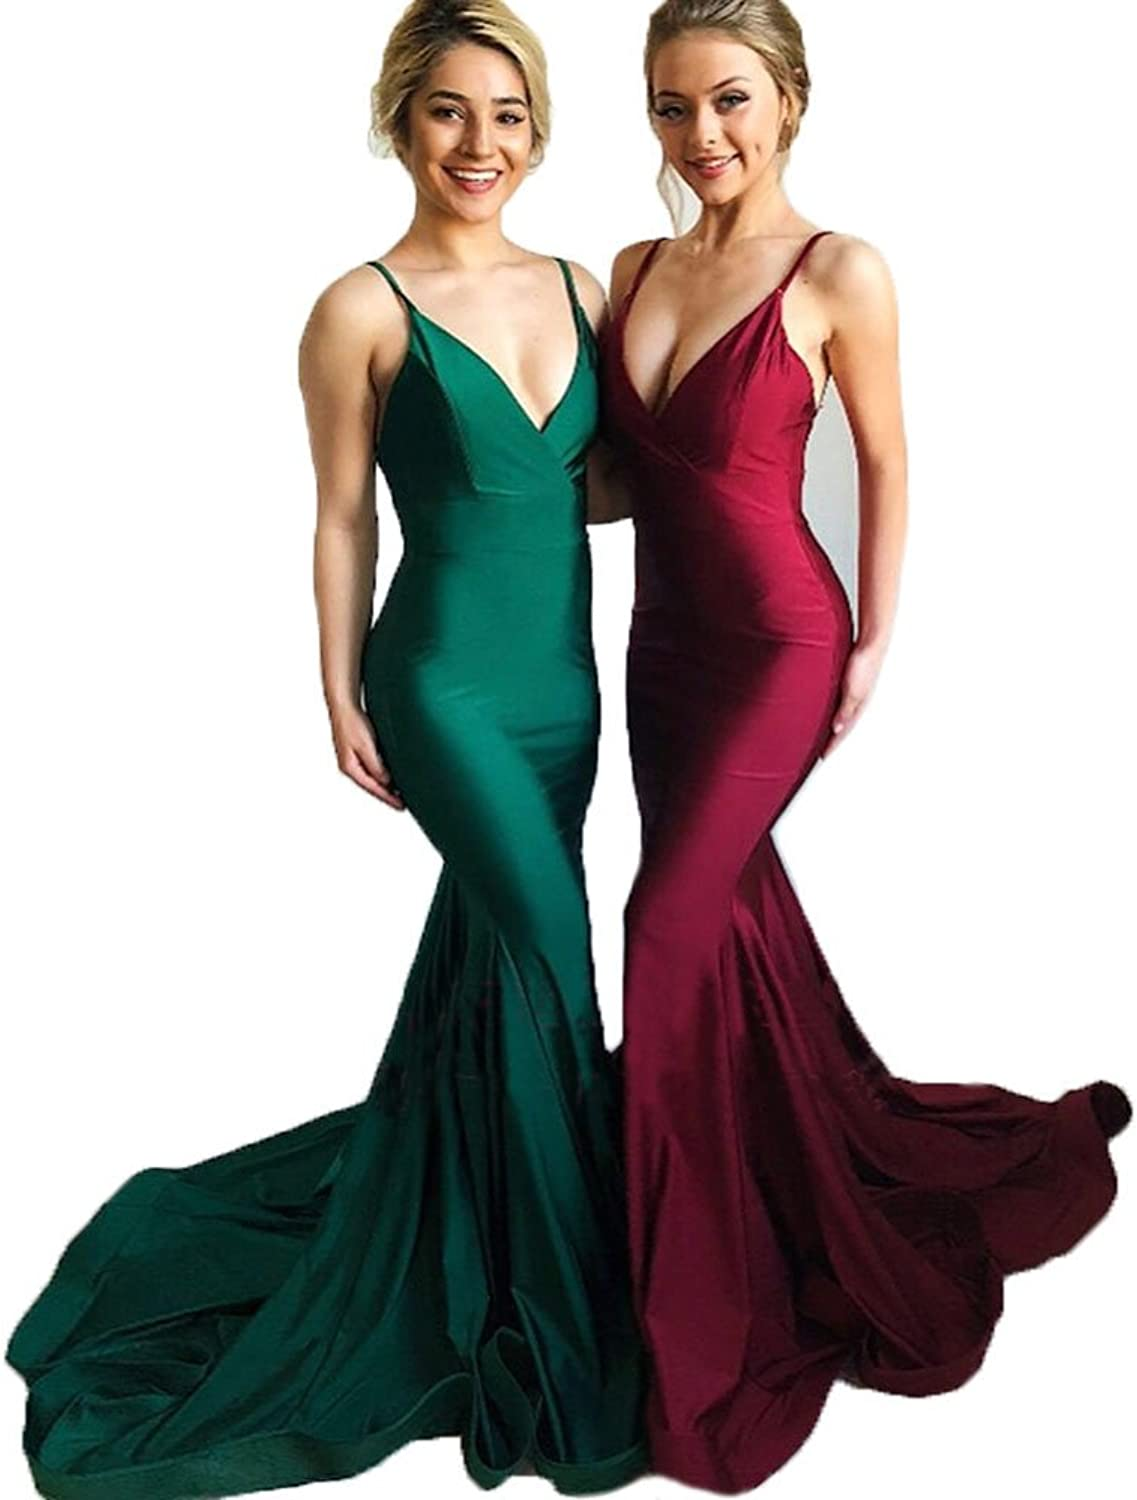 CCBubble Mermaid Prom Dresses 2018 Spaghetti Straps Long Evening Party Dress